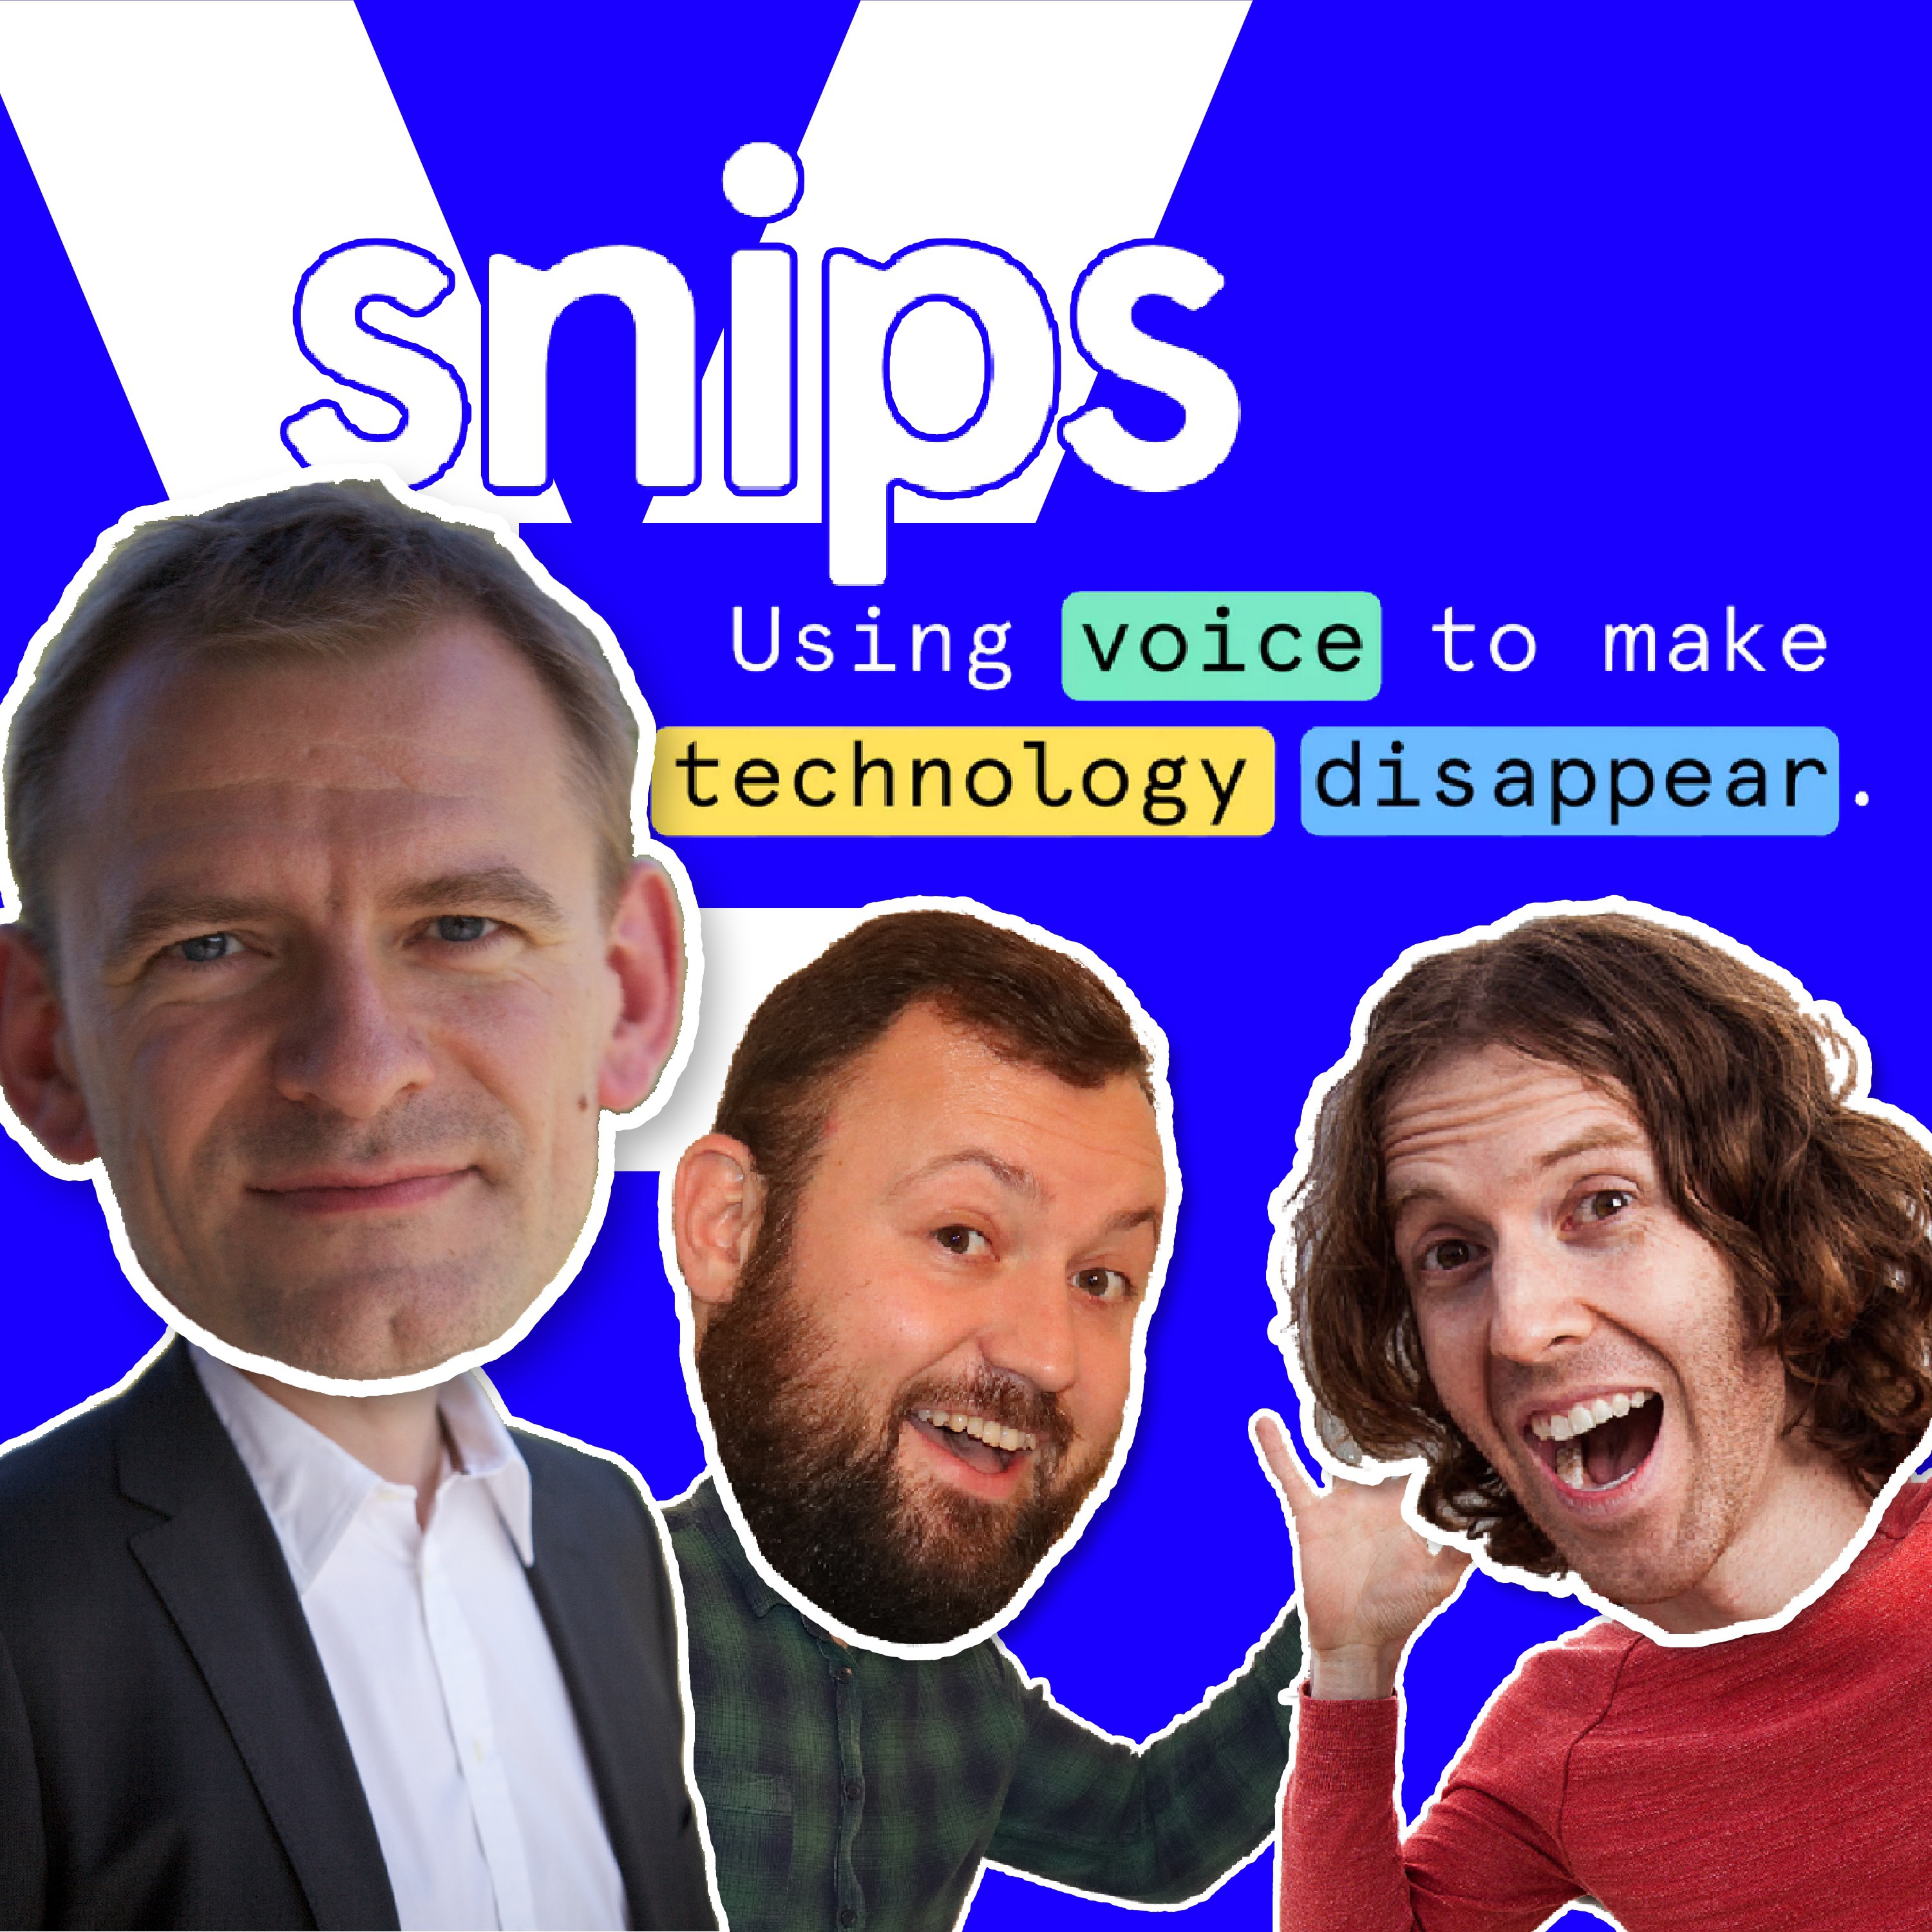 All about Snips with Yann Lachelle